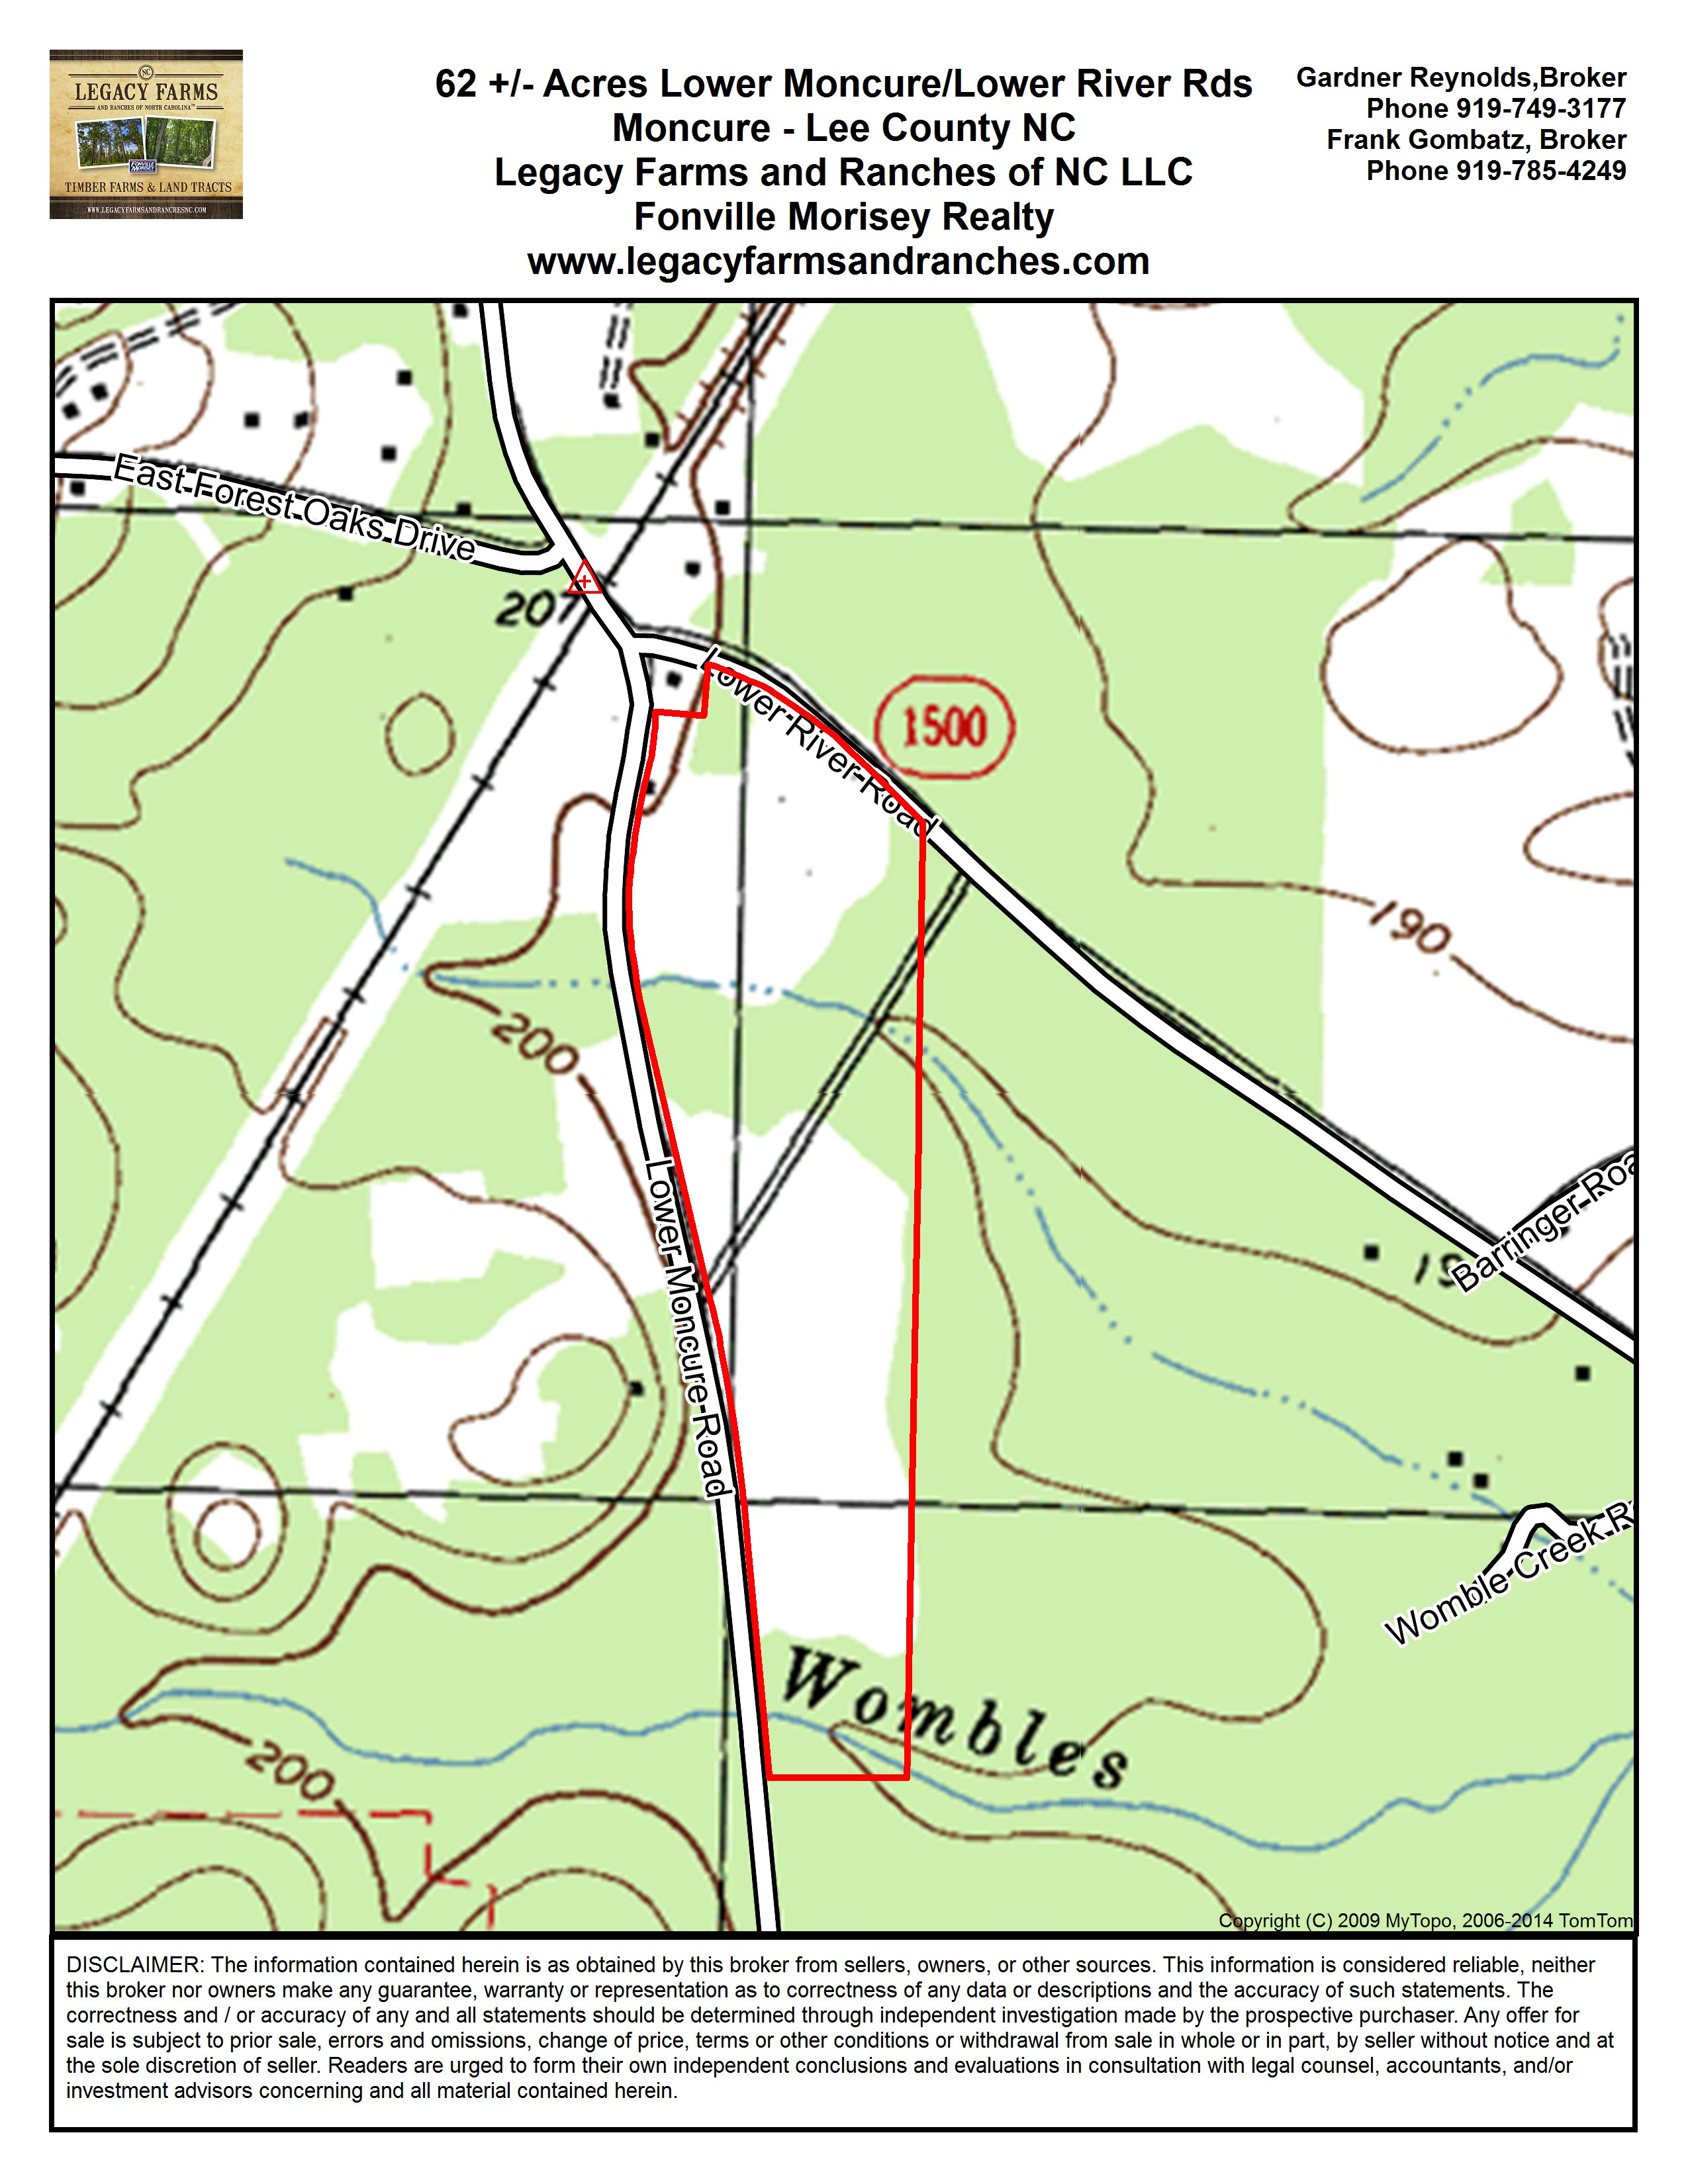 62 Acres For Sale On Lower Moncure Road In Lee County Nc 310 000